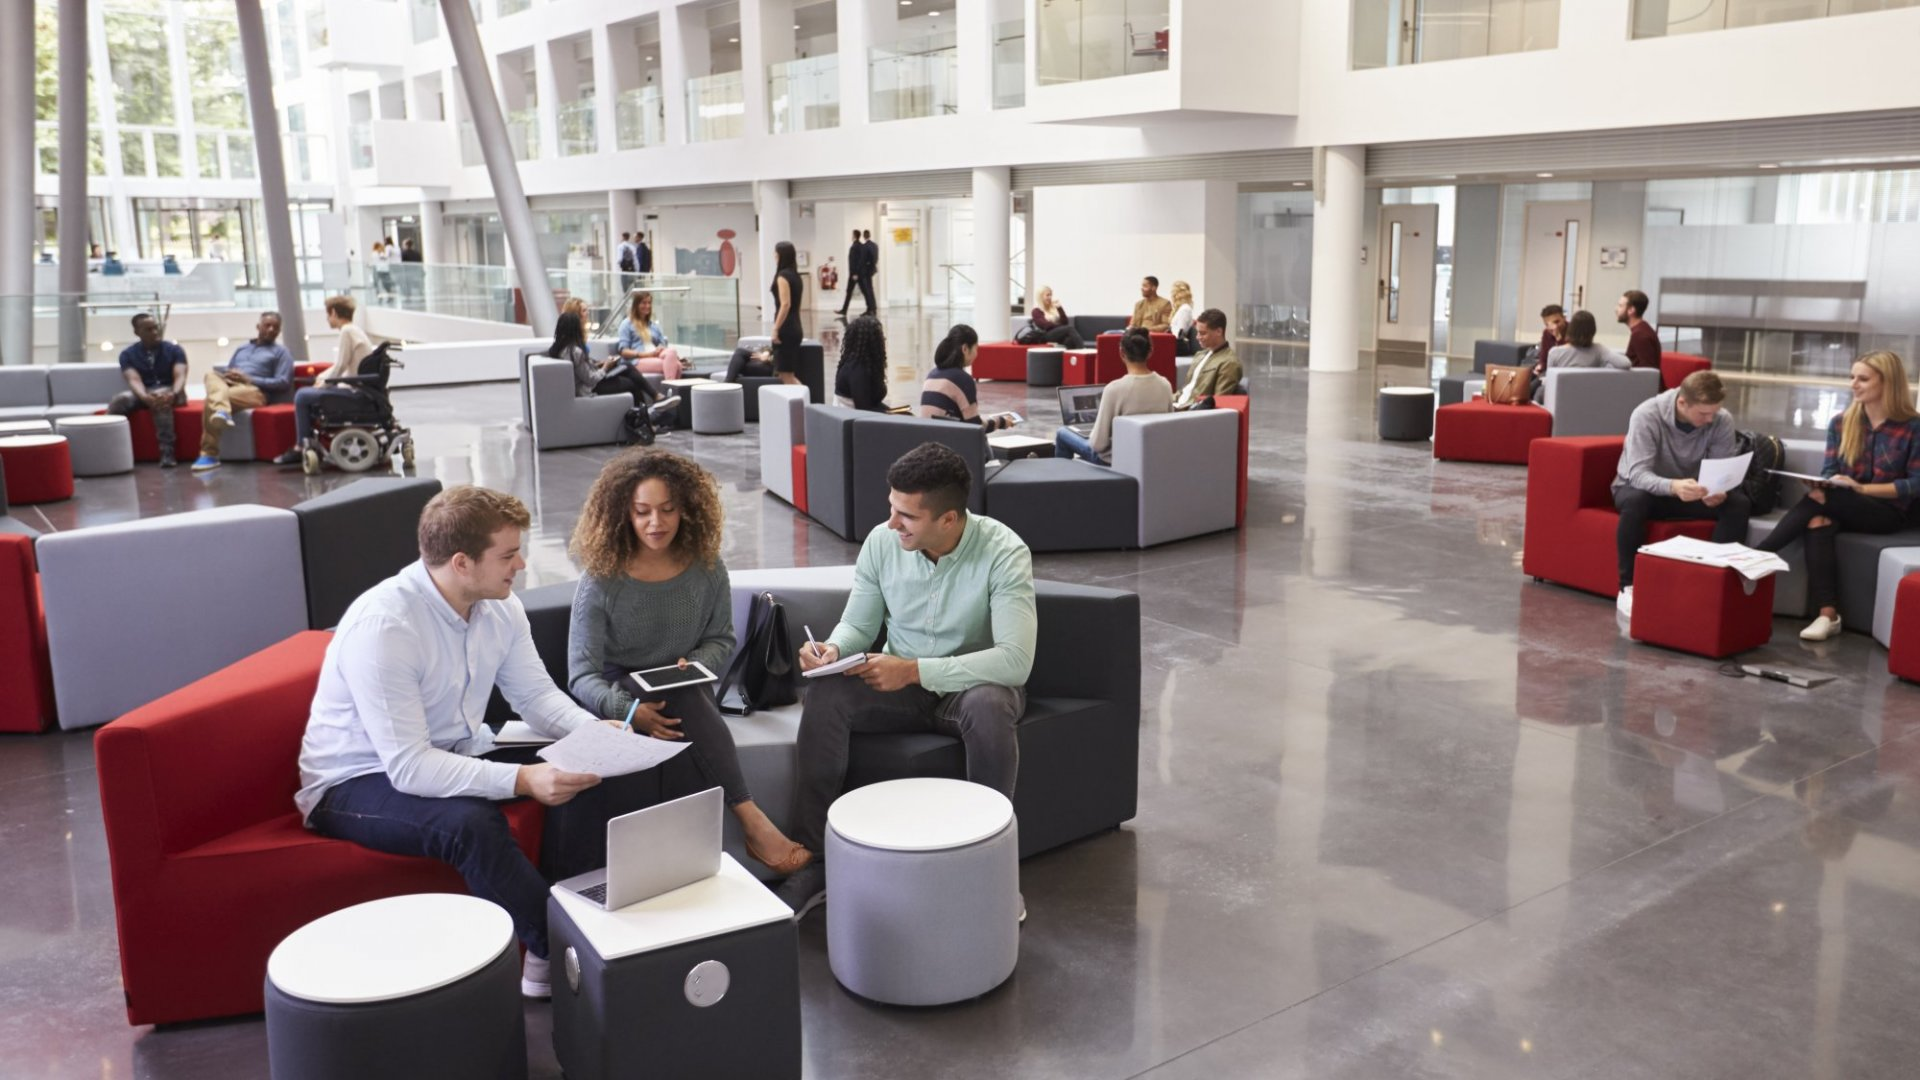 A Year-Long Study Says Recent Graduates Want Offices Designed Like This